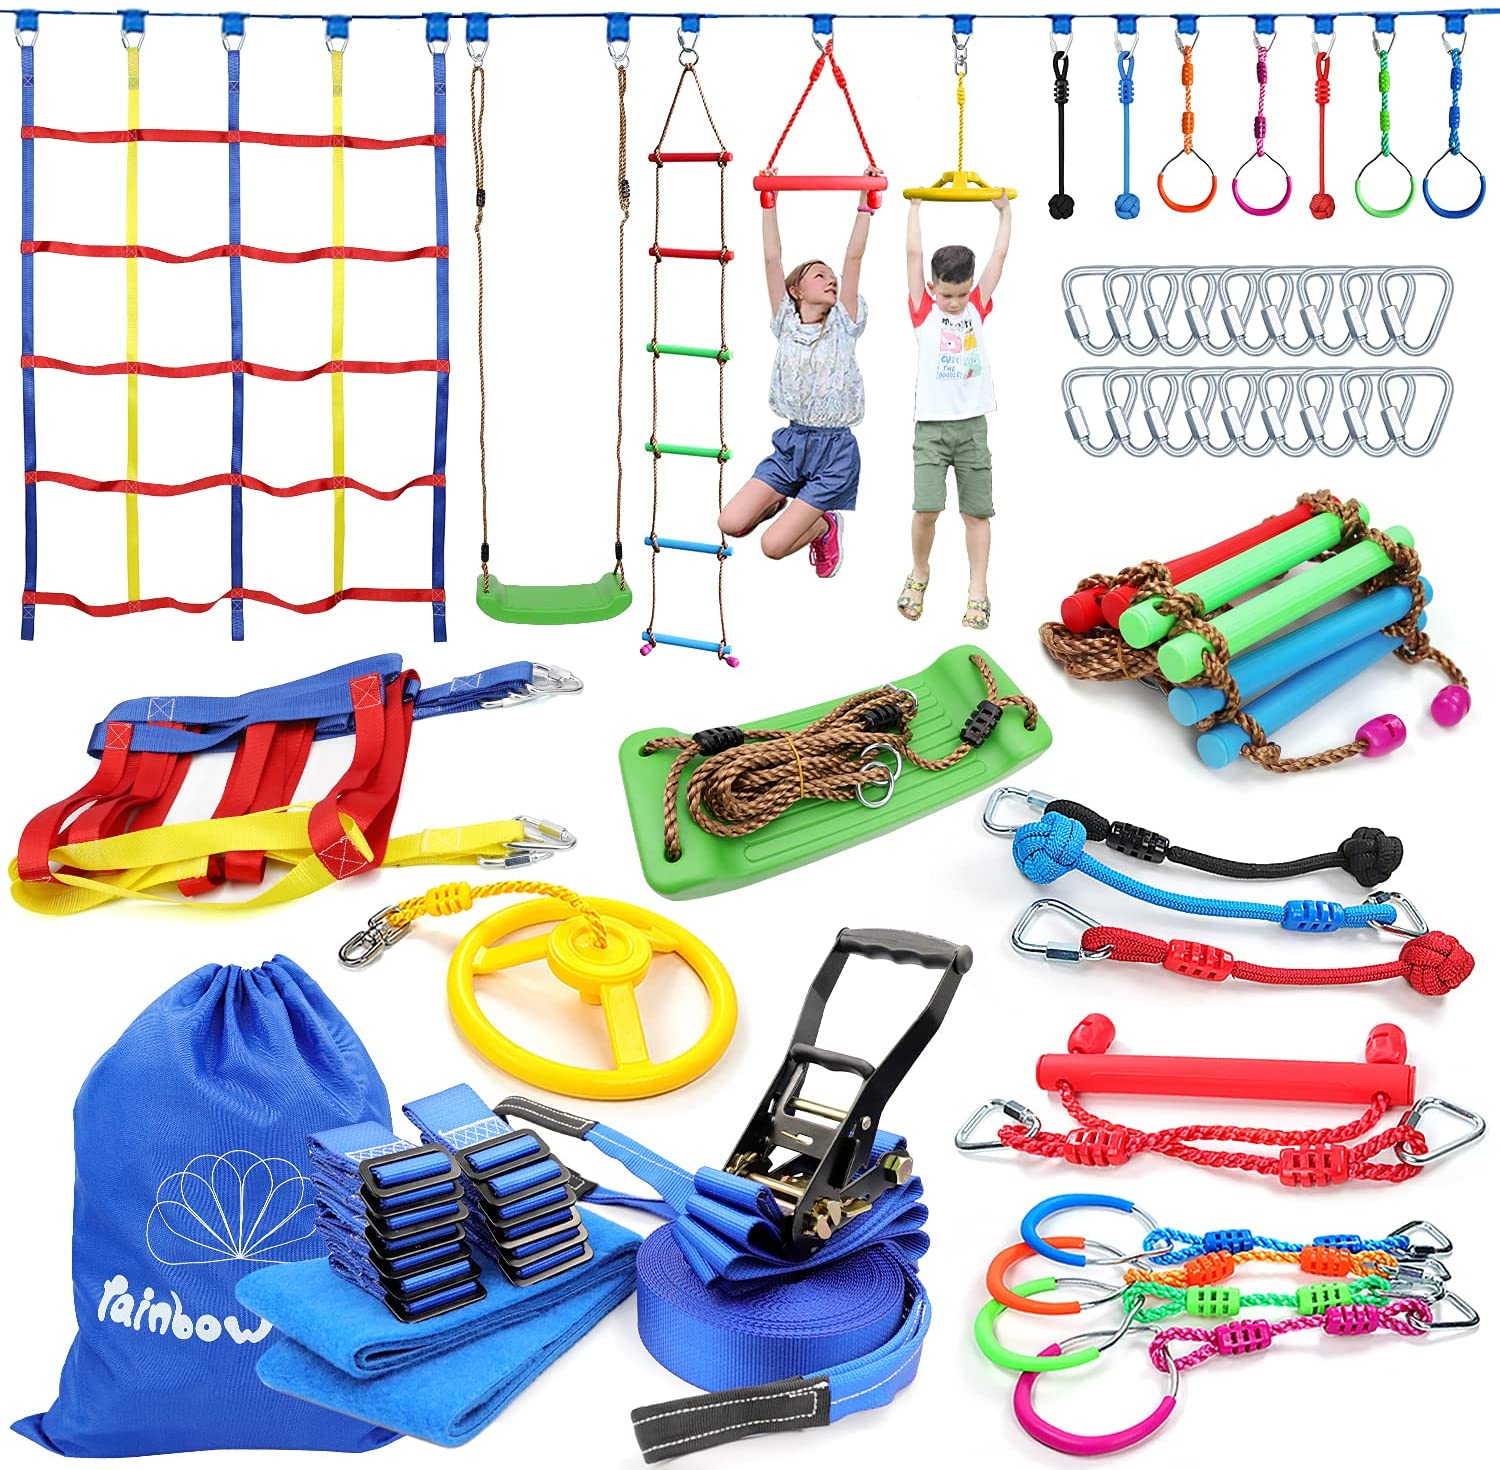 Review of Rainbow Craft 50ft Ninja Warrior Obstacle Course for Kids